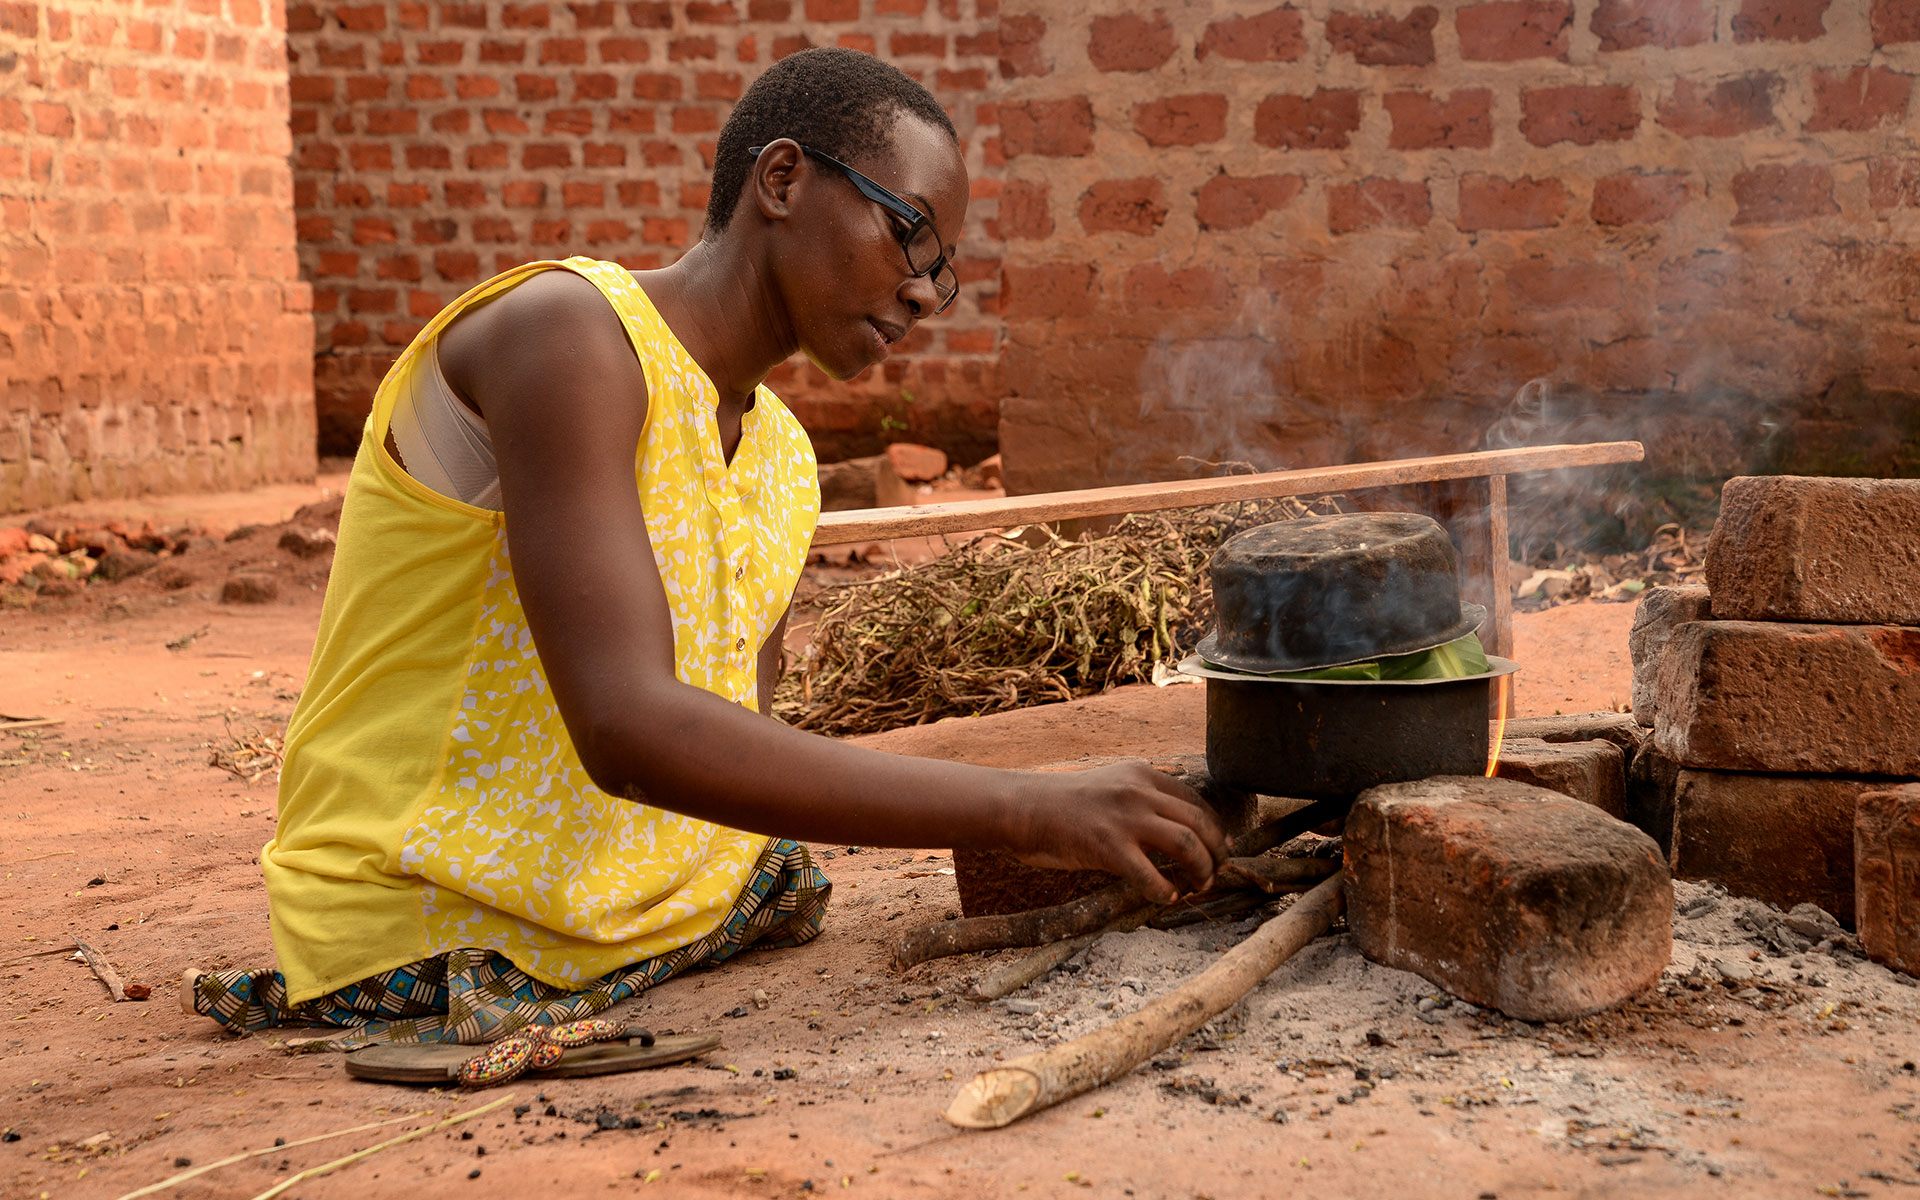 Grace prepares a meal on her outdoor stove